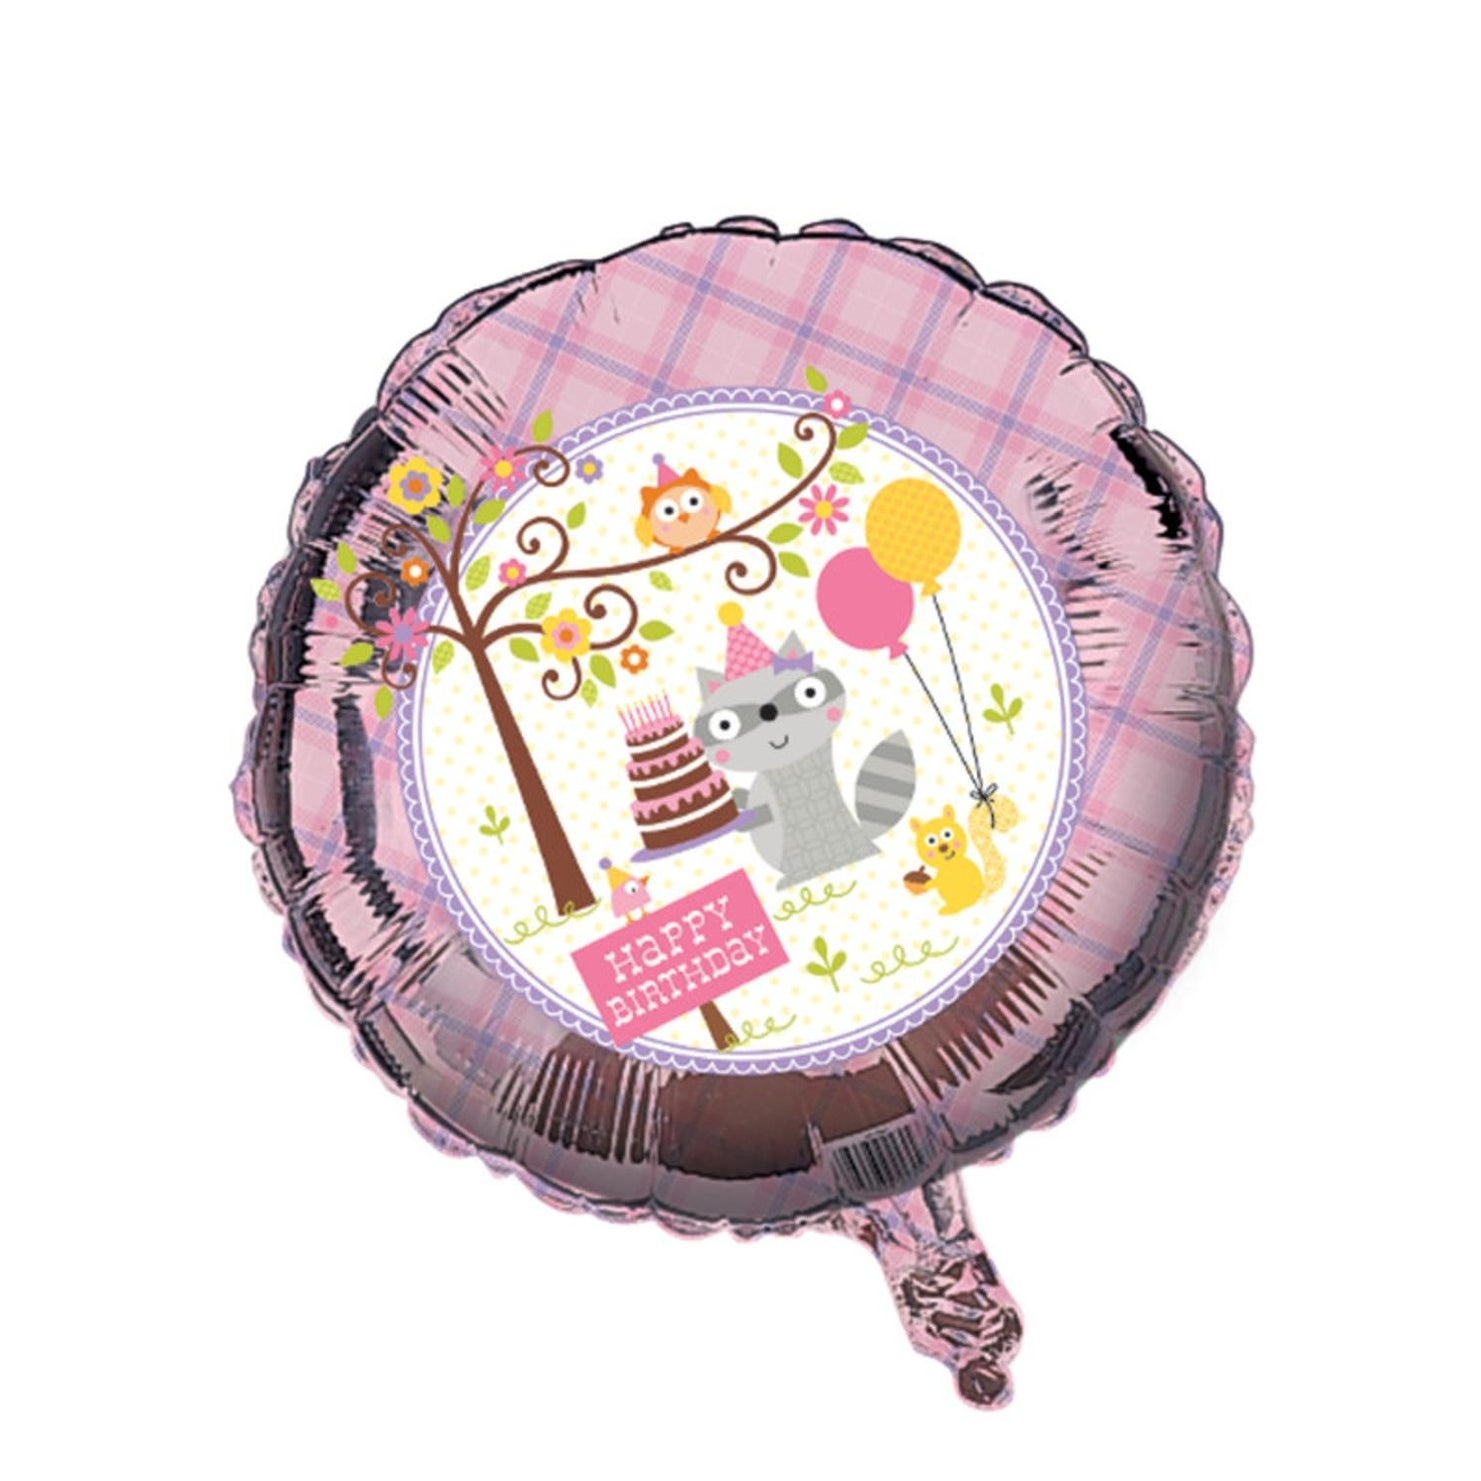 """Pack of 10 Happi Woodland Girl Themed Metallic """"Happy Birthday"""" Foil Party Balloons thumbnail"""